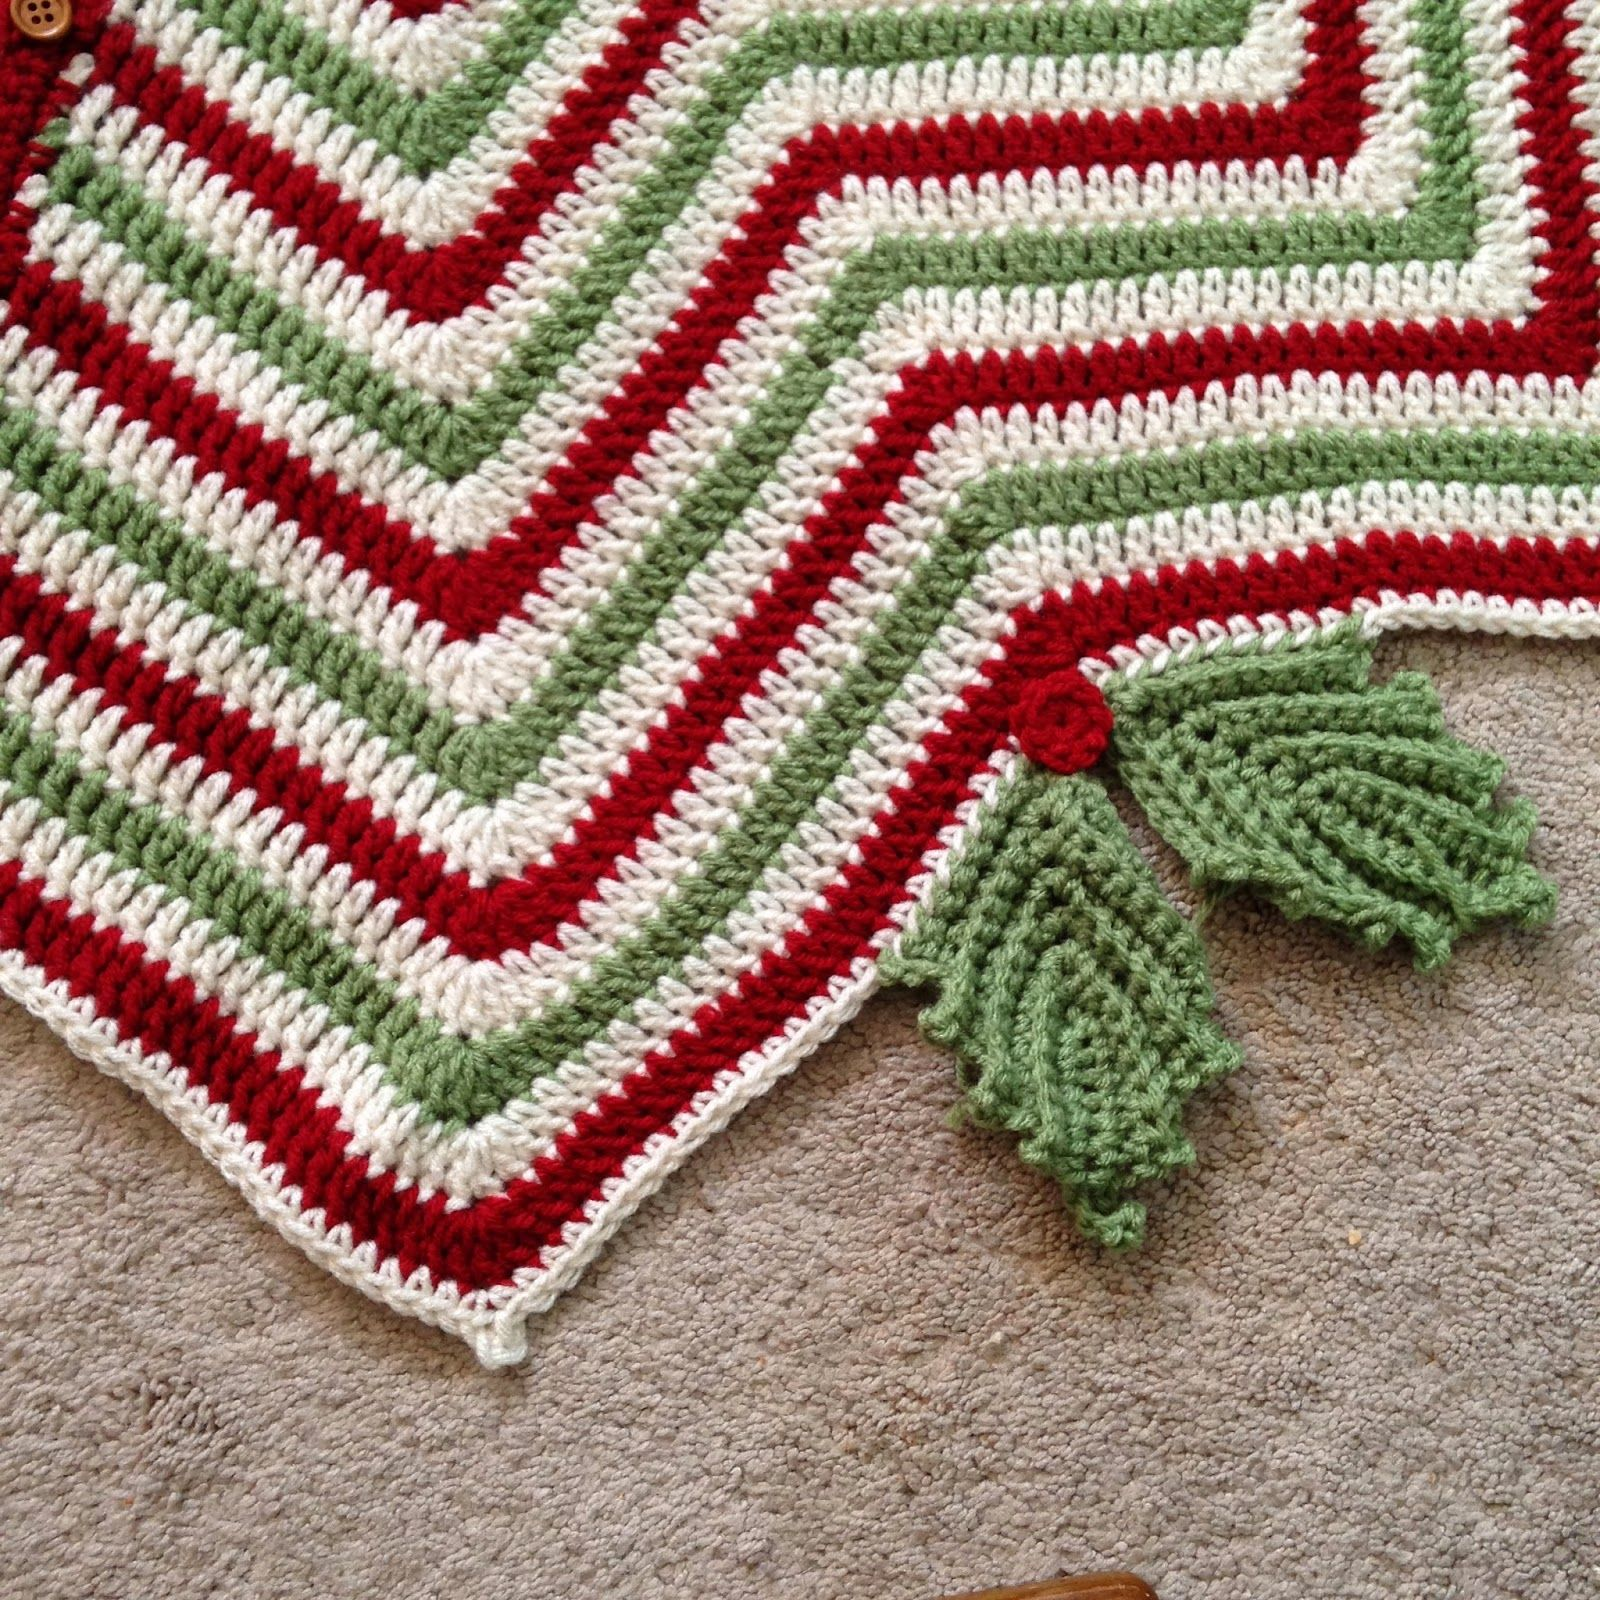 Christmas Tree Skirt | Tree skirts, Christmas tree and Crochet